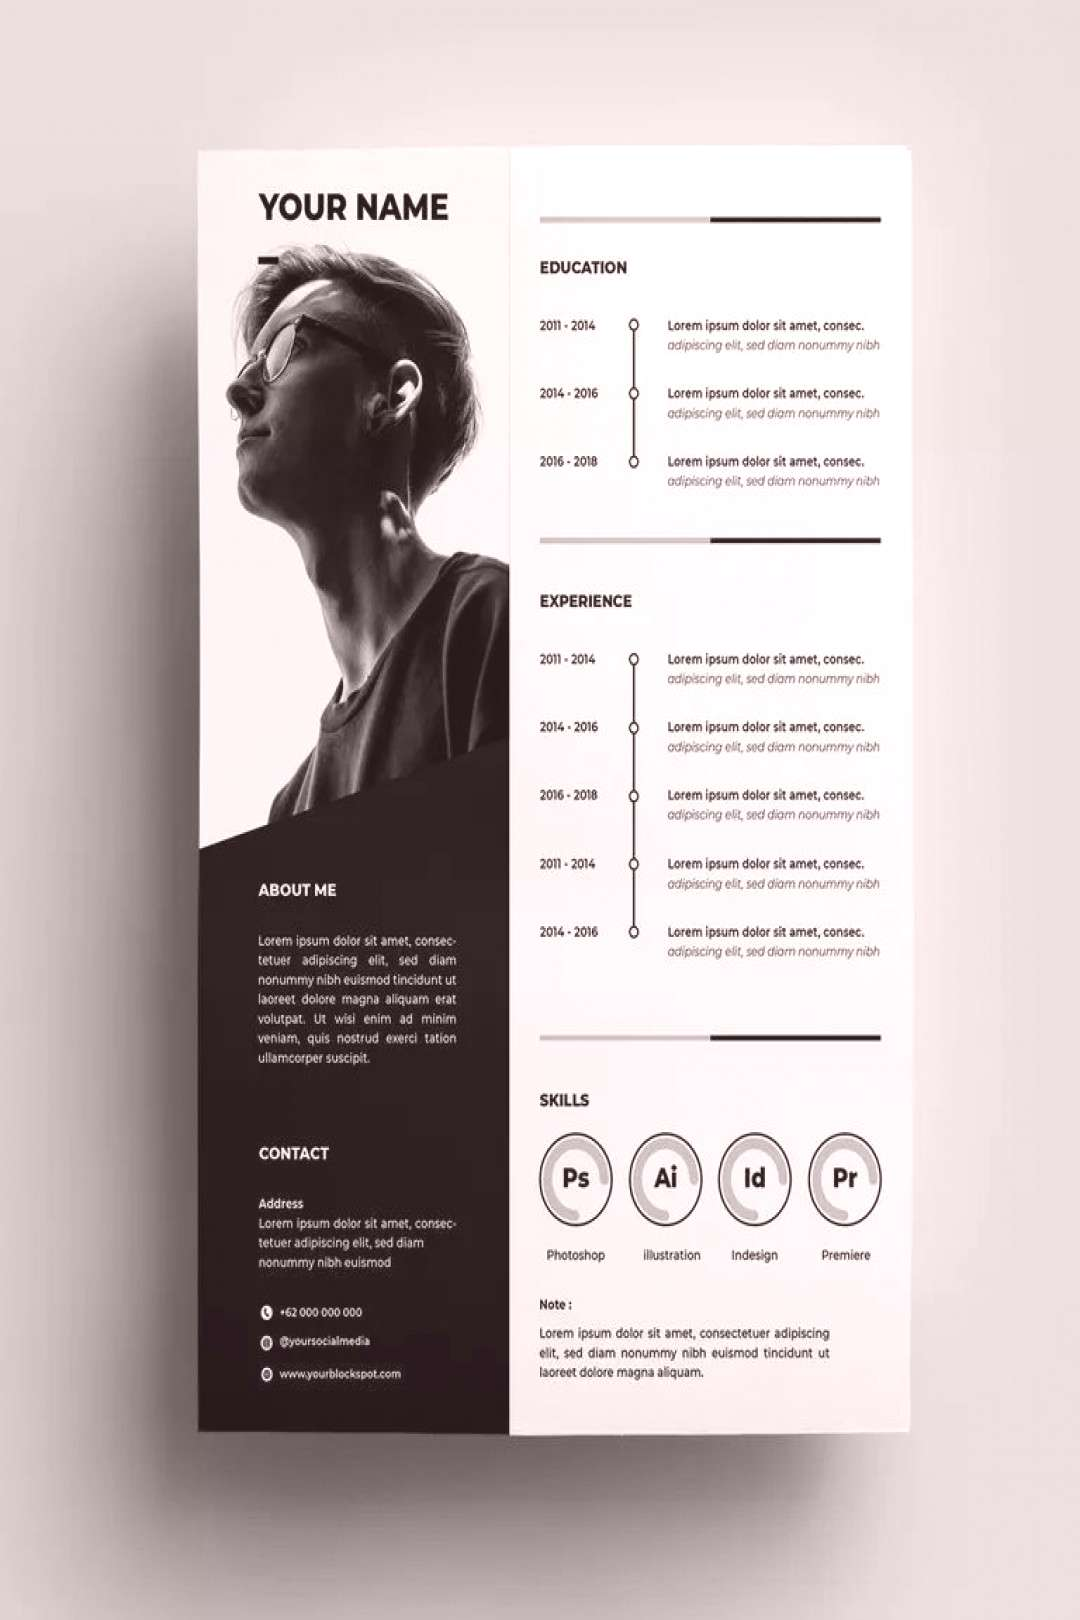 Resume Design Templates AI, EPS - A4 paper size. Download